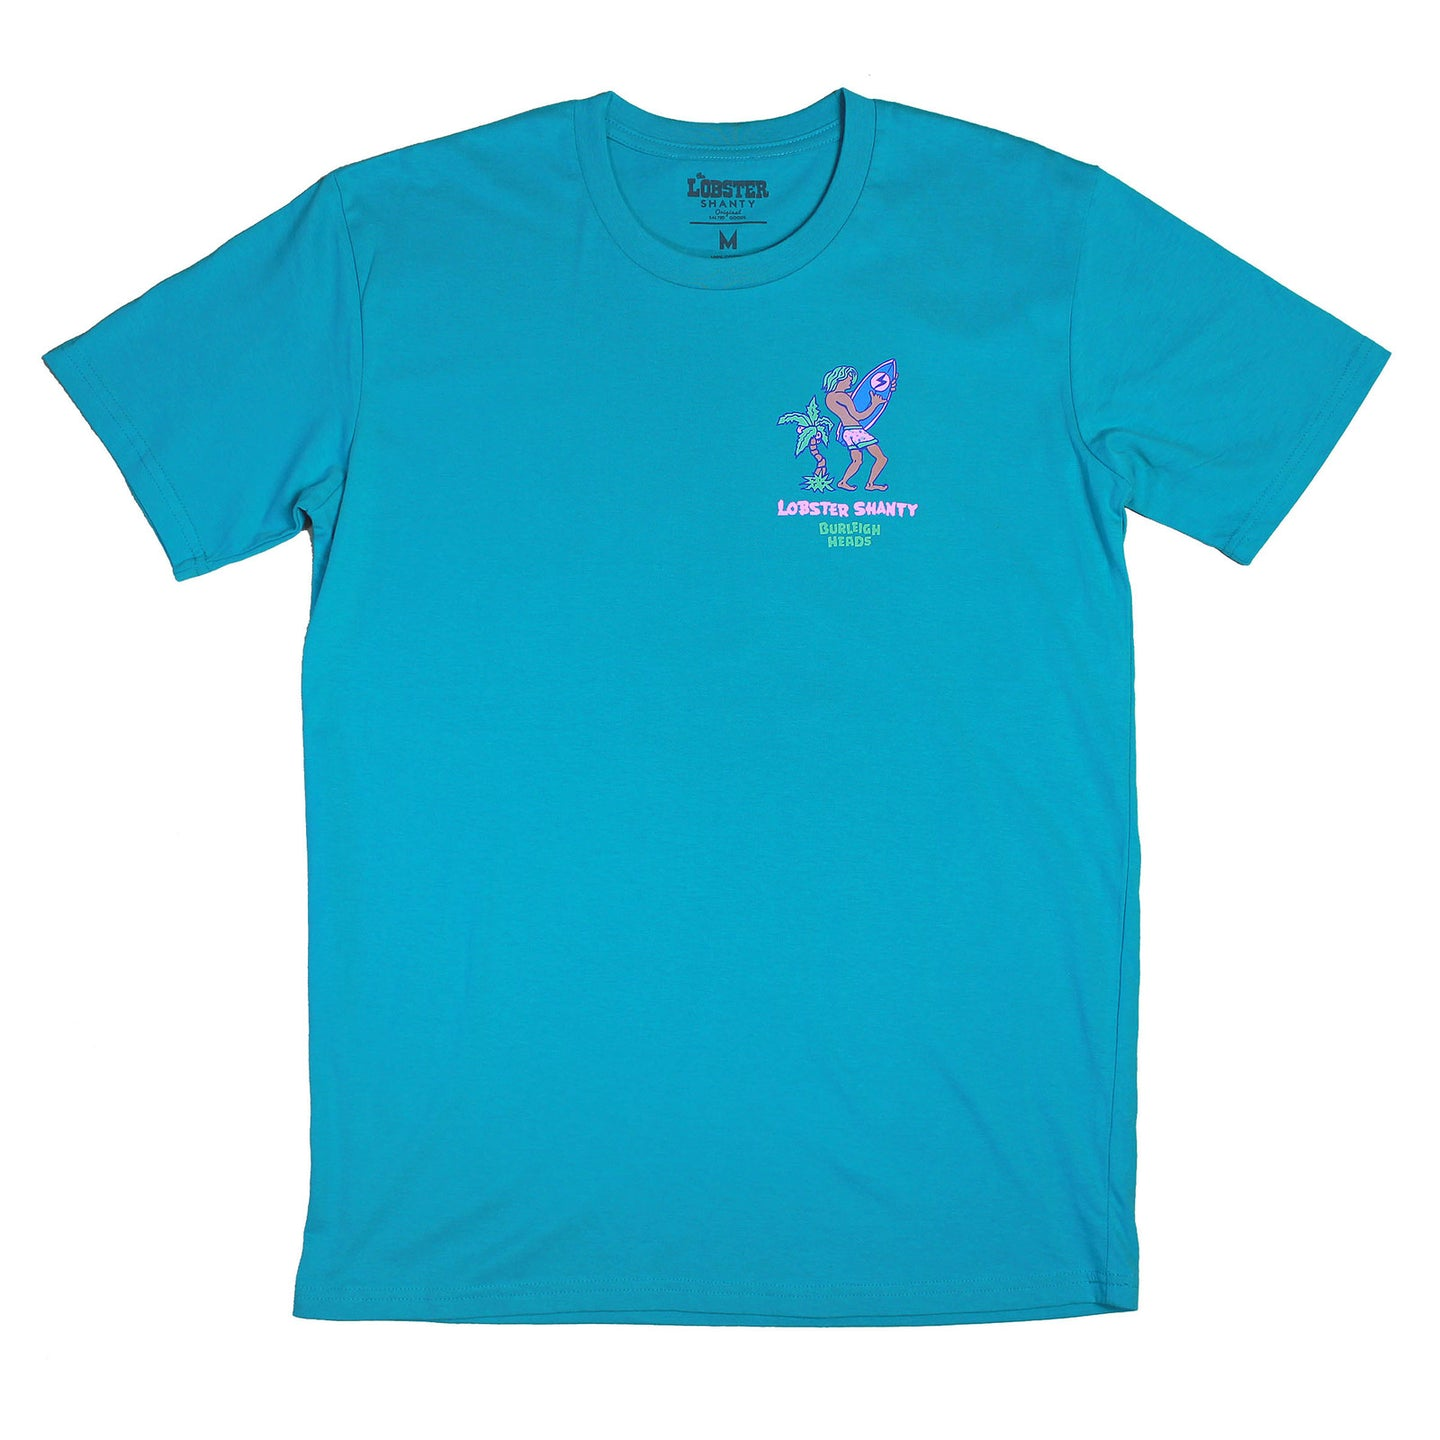 Lobster Shanty 'Froth Town' Tee